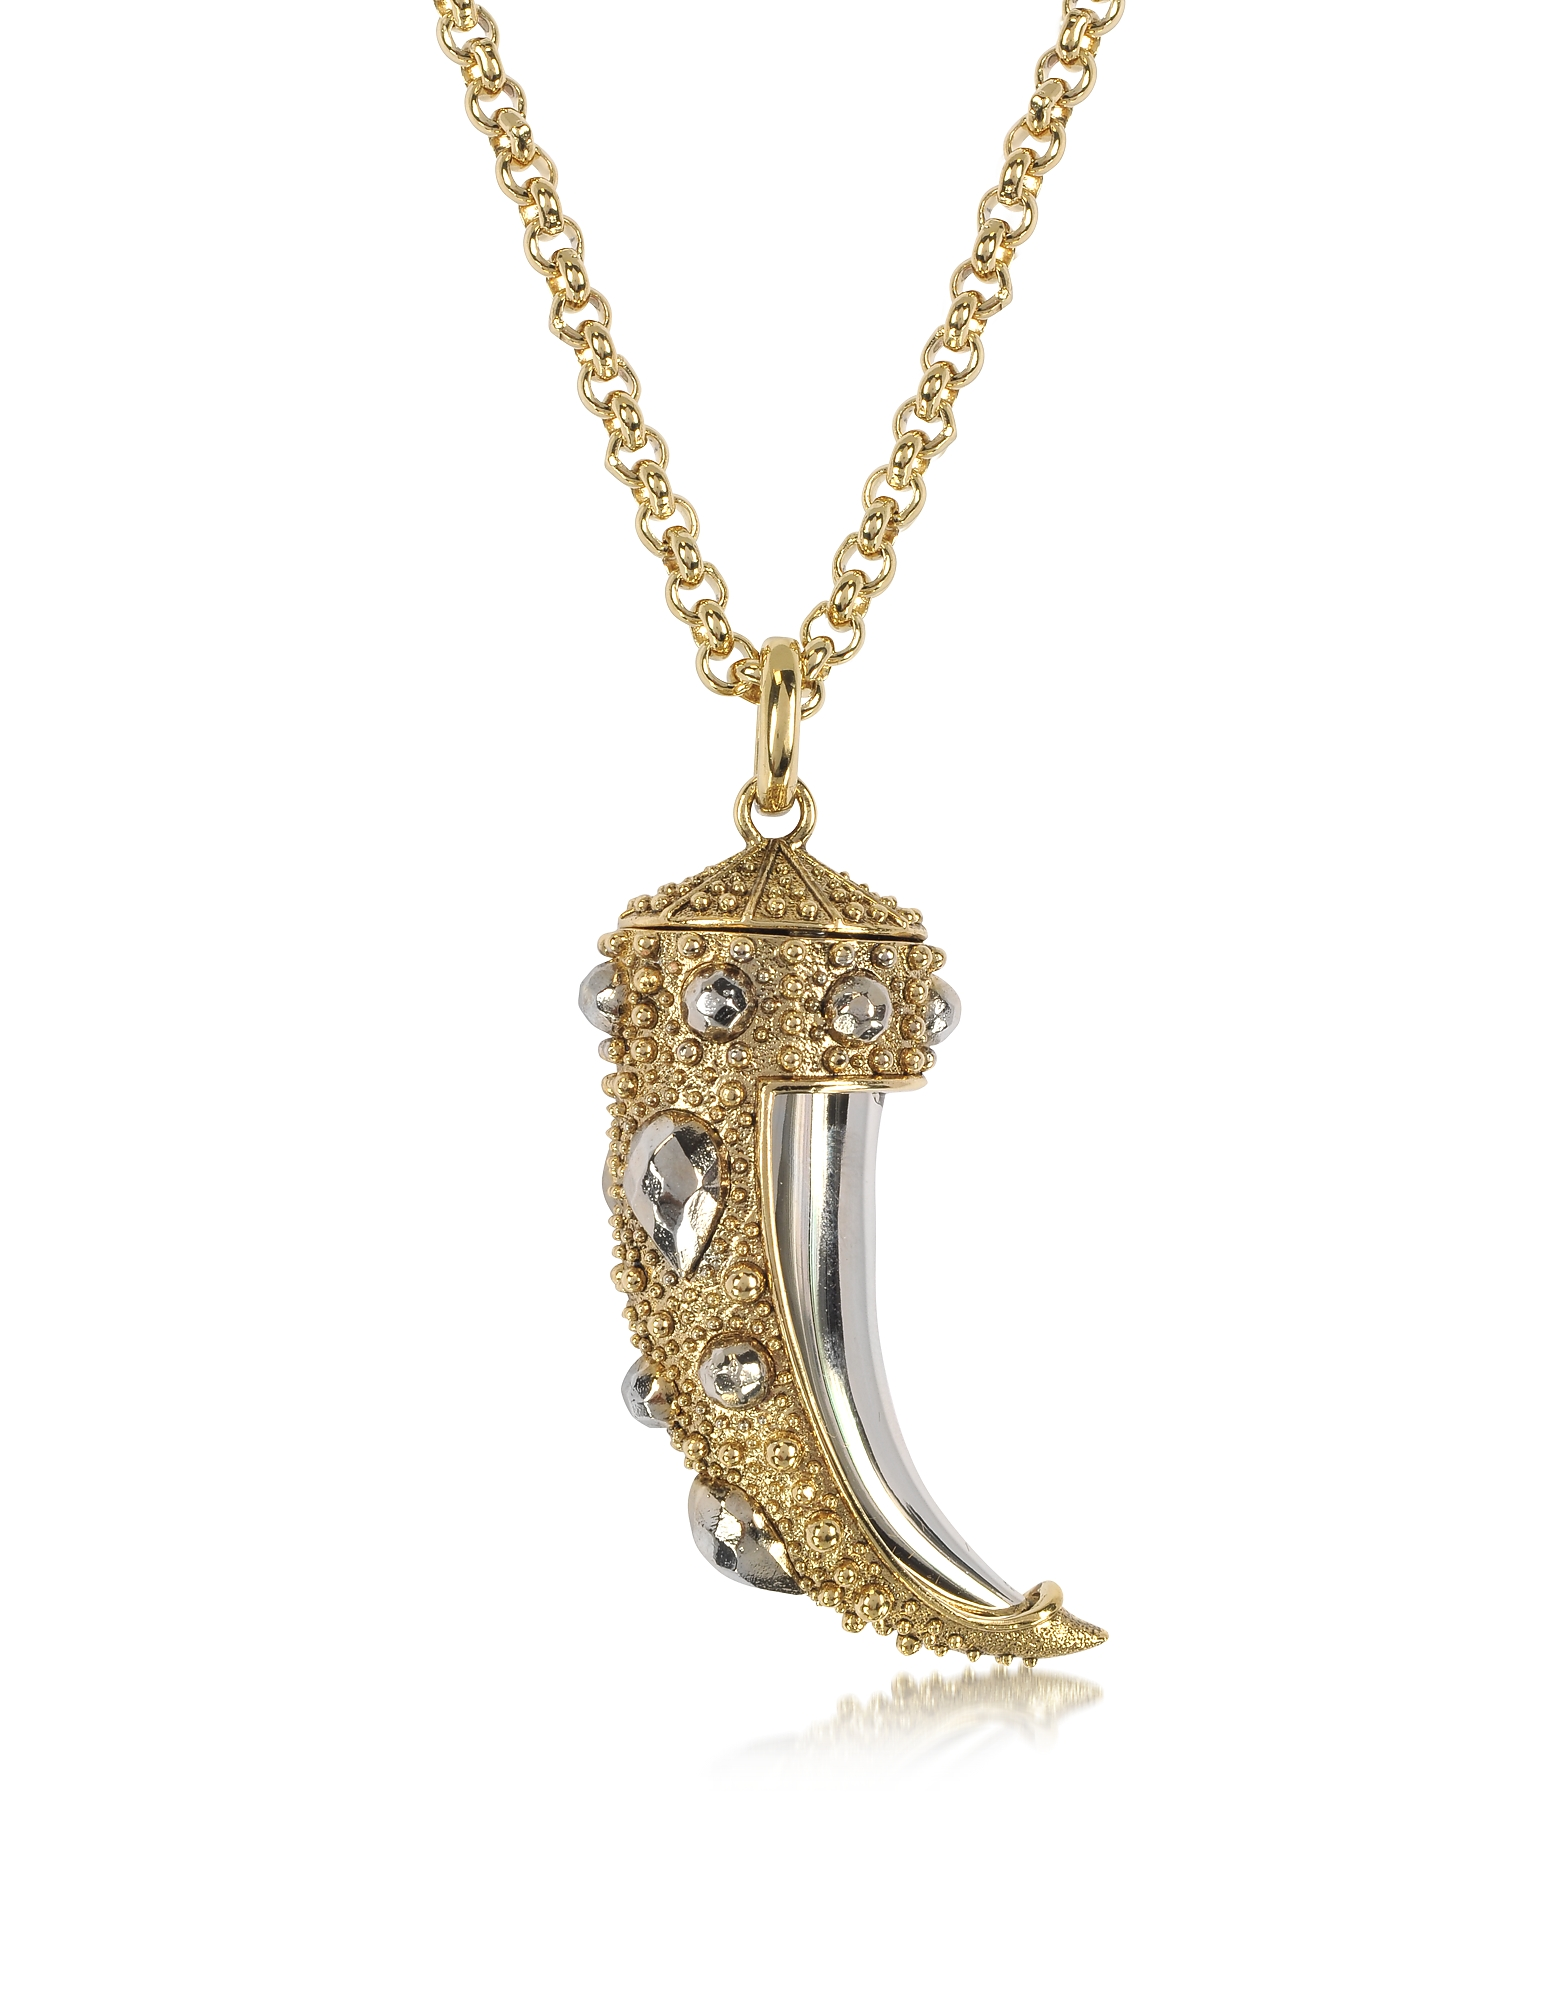 Roberto Cavalli Necklaces, Horn Two-Tone Metal Necklace